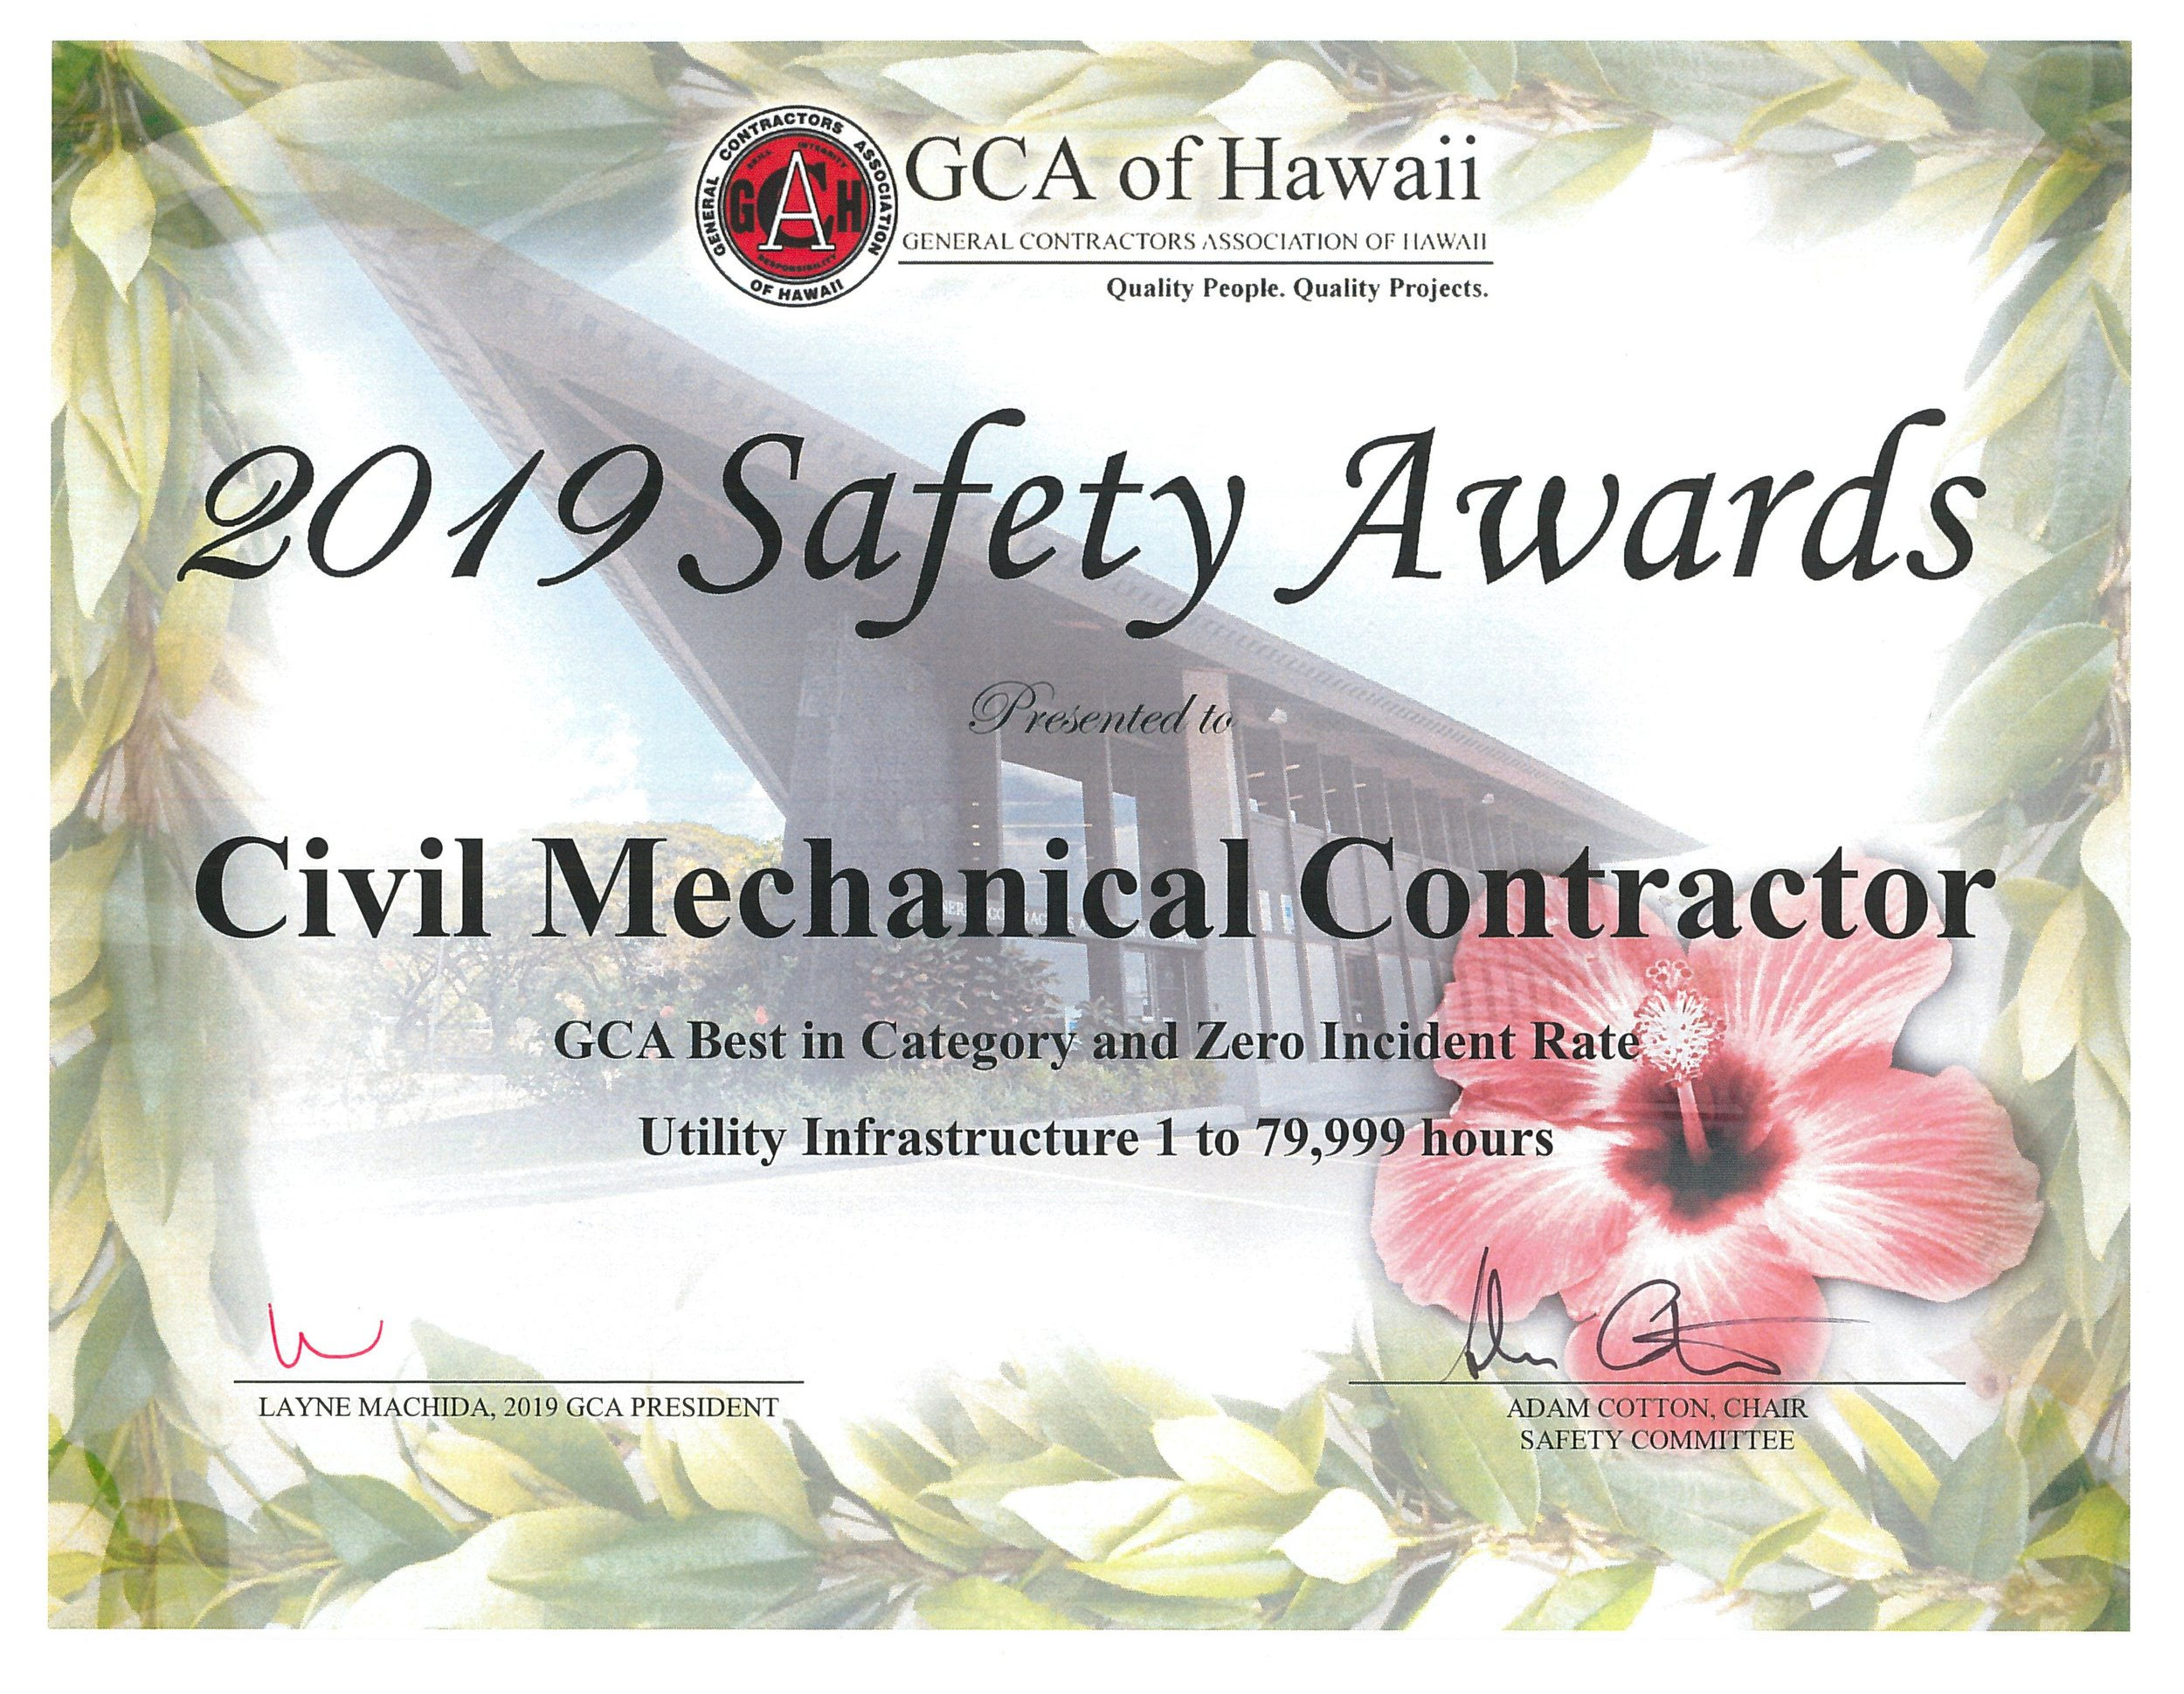 2019 Safety Award for Best in Category and Zero Incident Rate (GCA of Hawaii)